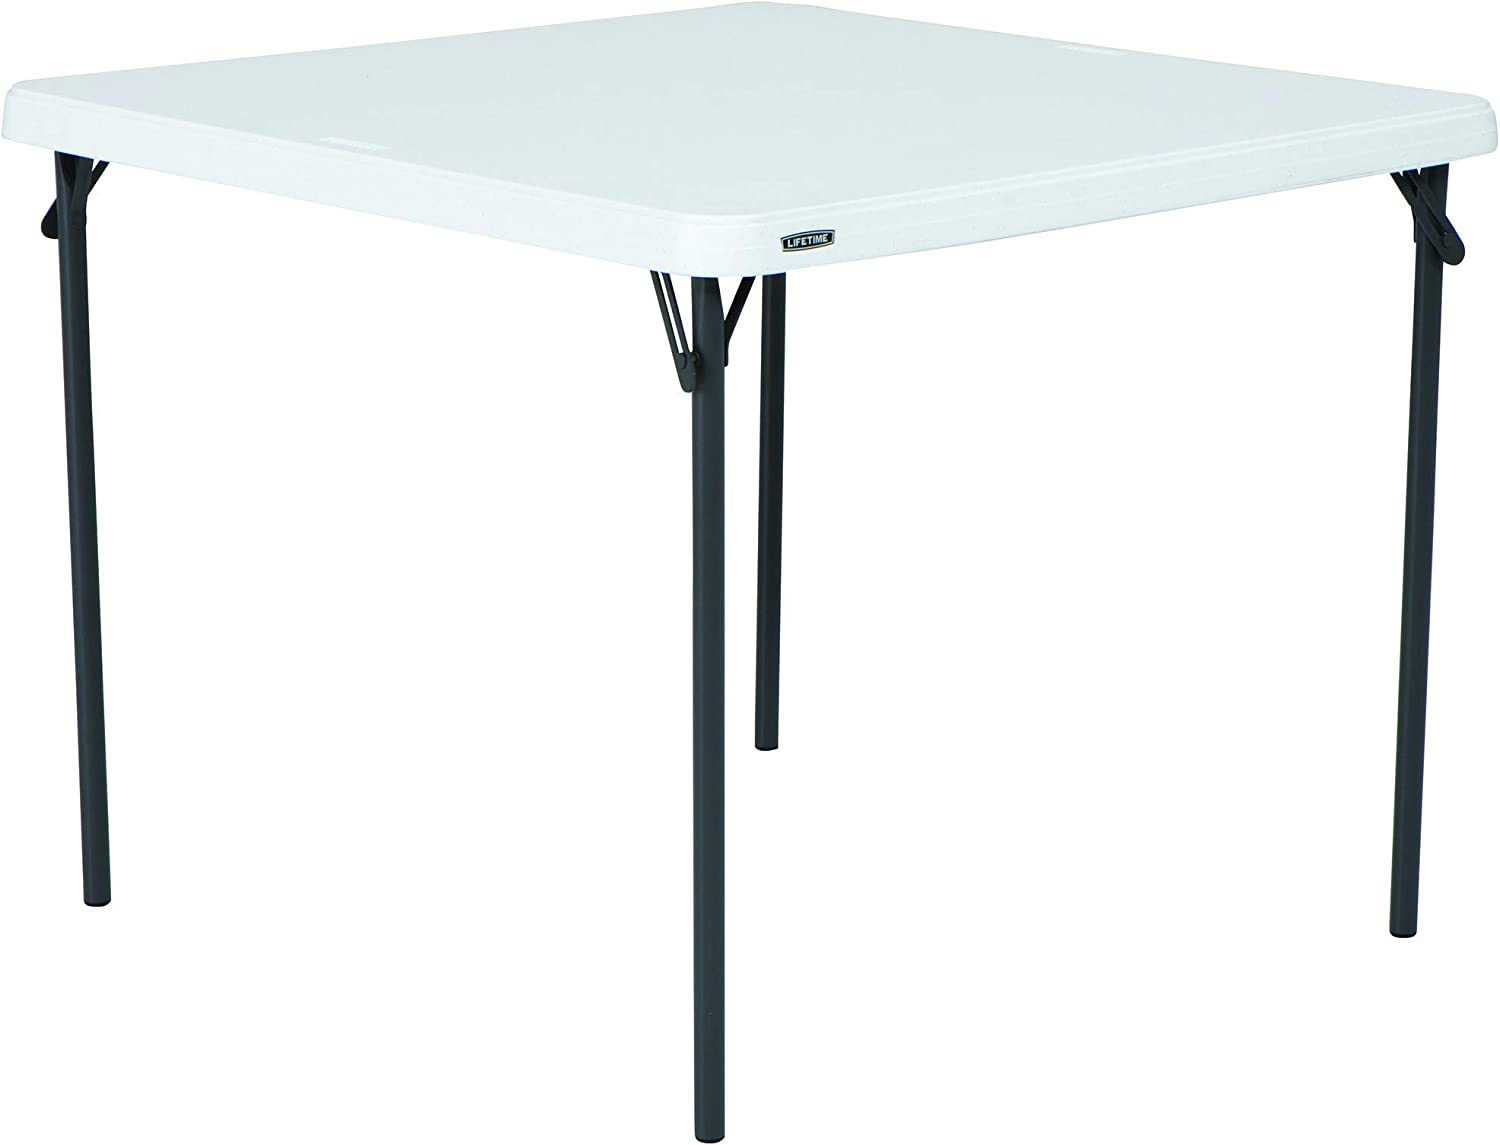 28 1//2 x 37 1//2 Steel//Laminate Folds-to-a-Table Melamine Easel White